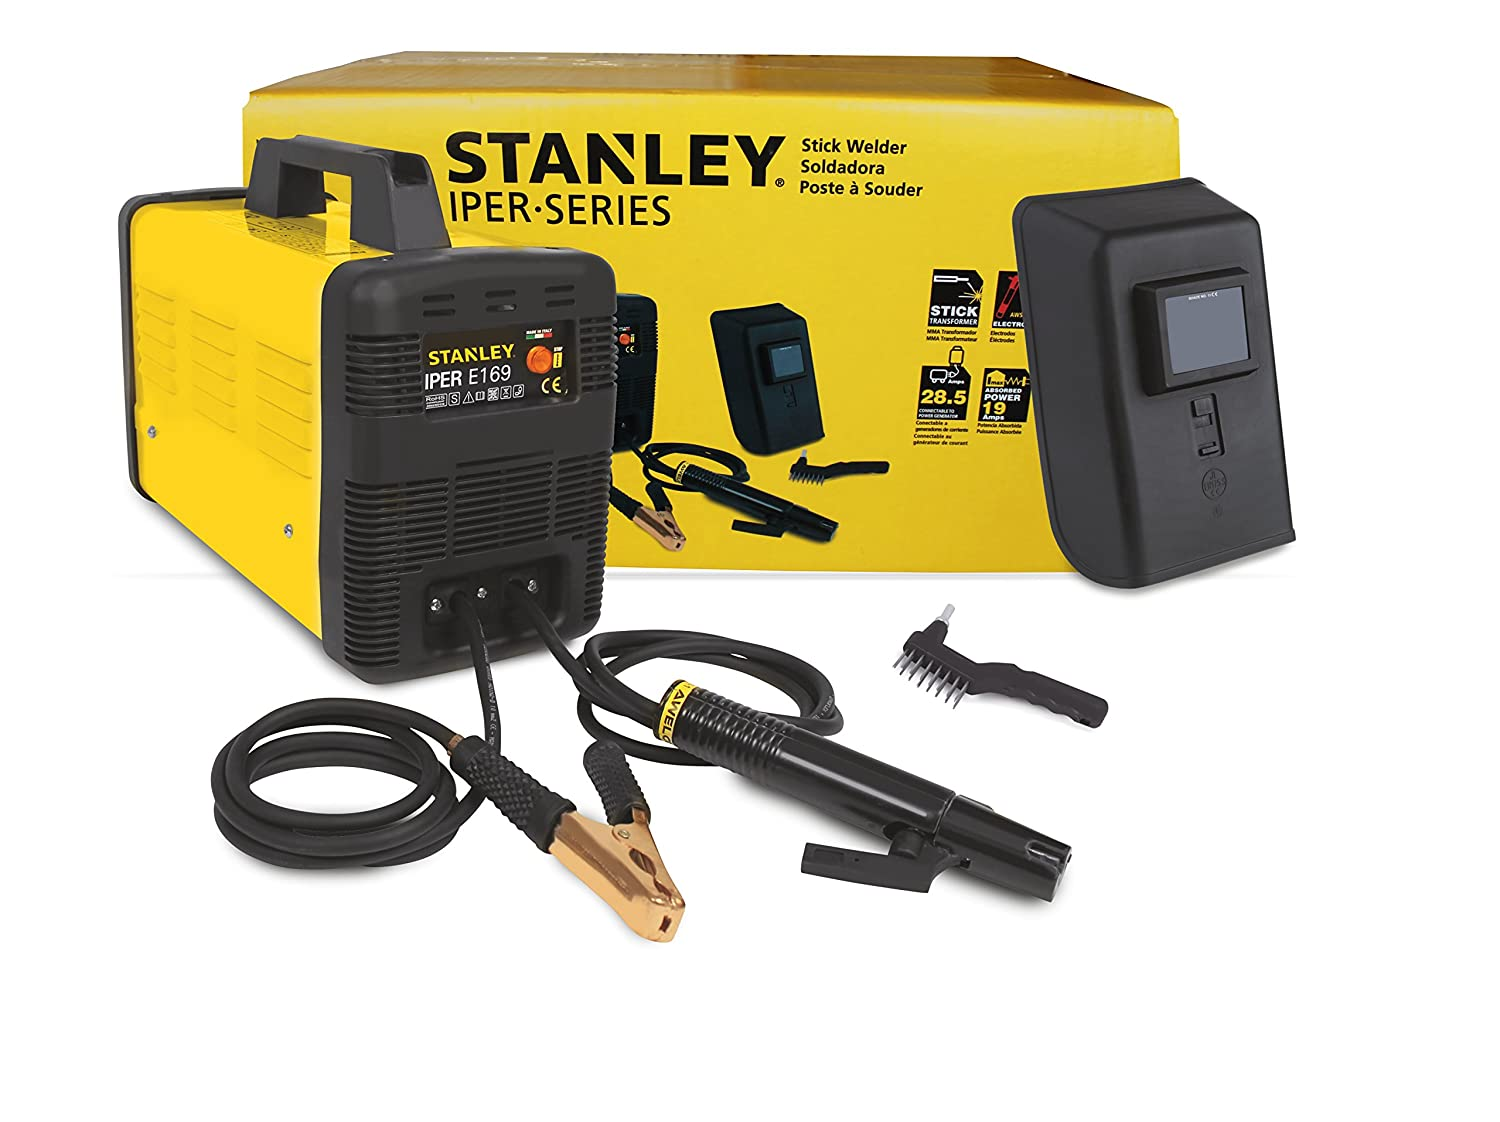 Stanley 41118U IPER E169 120-volt 100-Amp Stick Welder, 15.2 x 7 x 10.6-Inch, Yellow - - Amazon.com